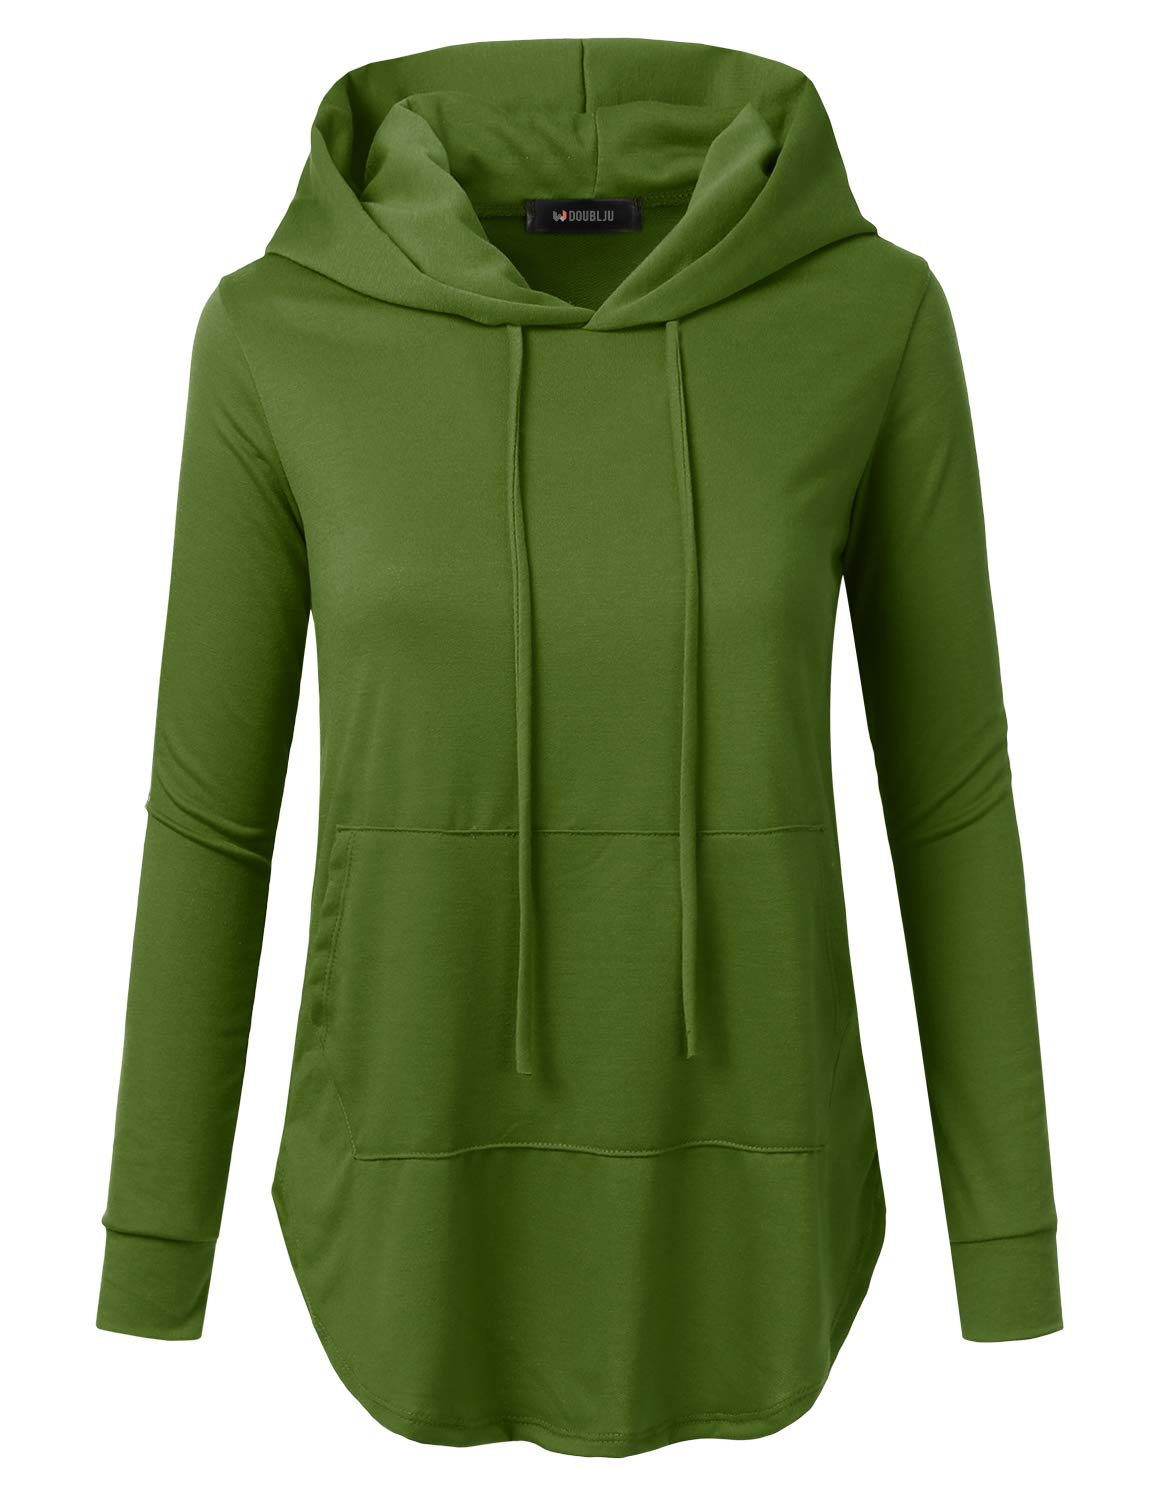 Doublju Loose Fit Pullover Hoodie with Kangaroo Pocket for Womens with Plus Size (Made in USA) Green Medium